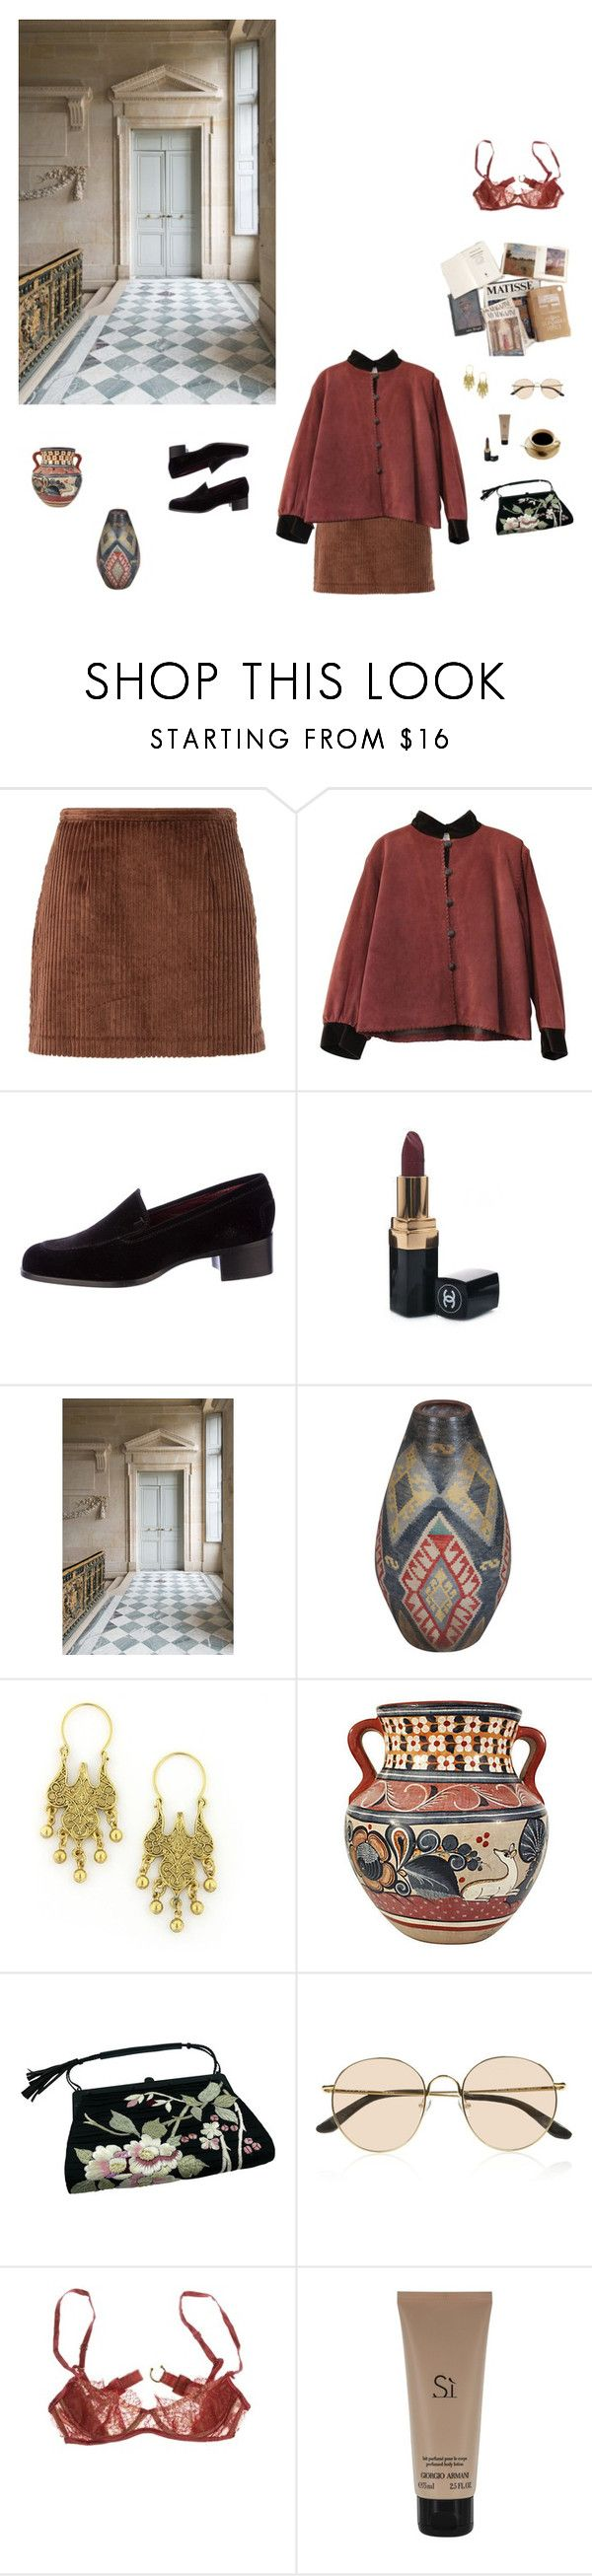 """""""Untitled #101"""" by cizinec ❤ liked on Polyvore featuring Opening Ceremony, Yves Saint Laurent, Tod's, Chanel, Trianon, 1928, Tom Ford, The Row, Damaris and Giorgio Armani"""